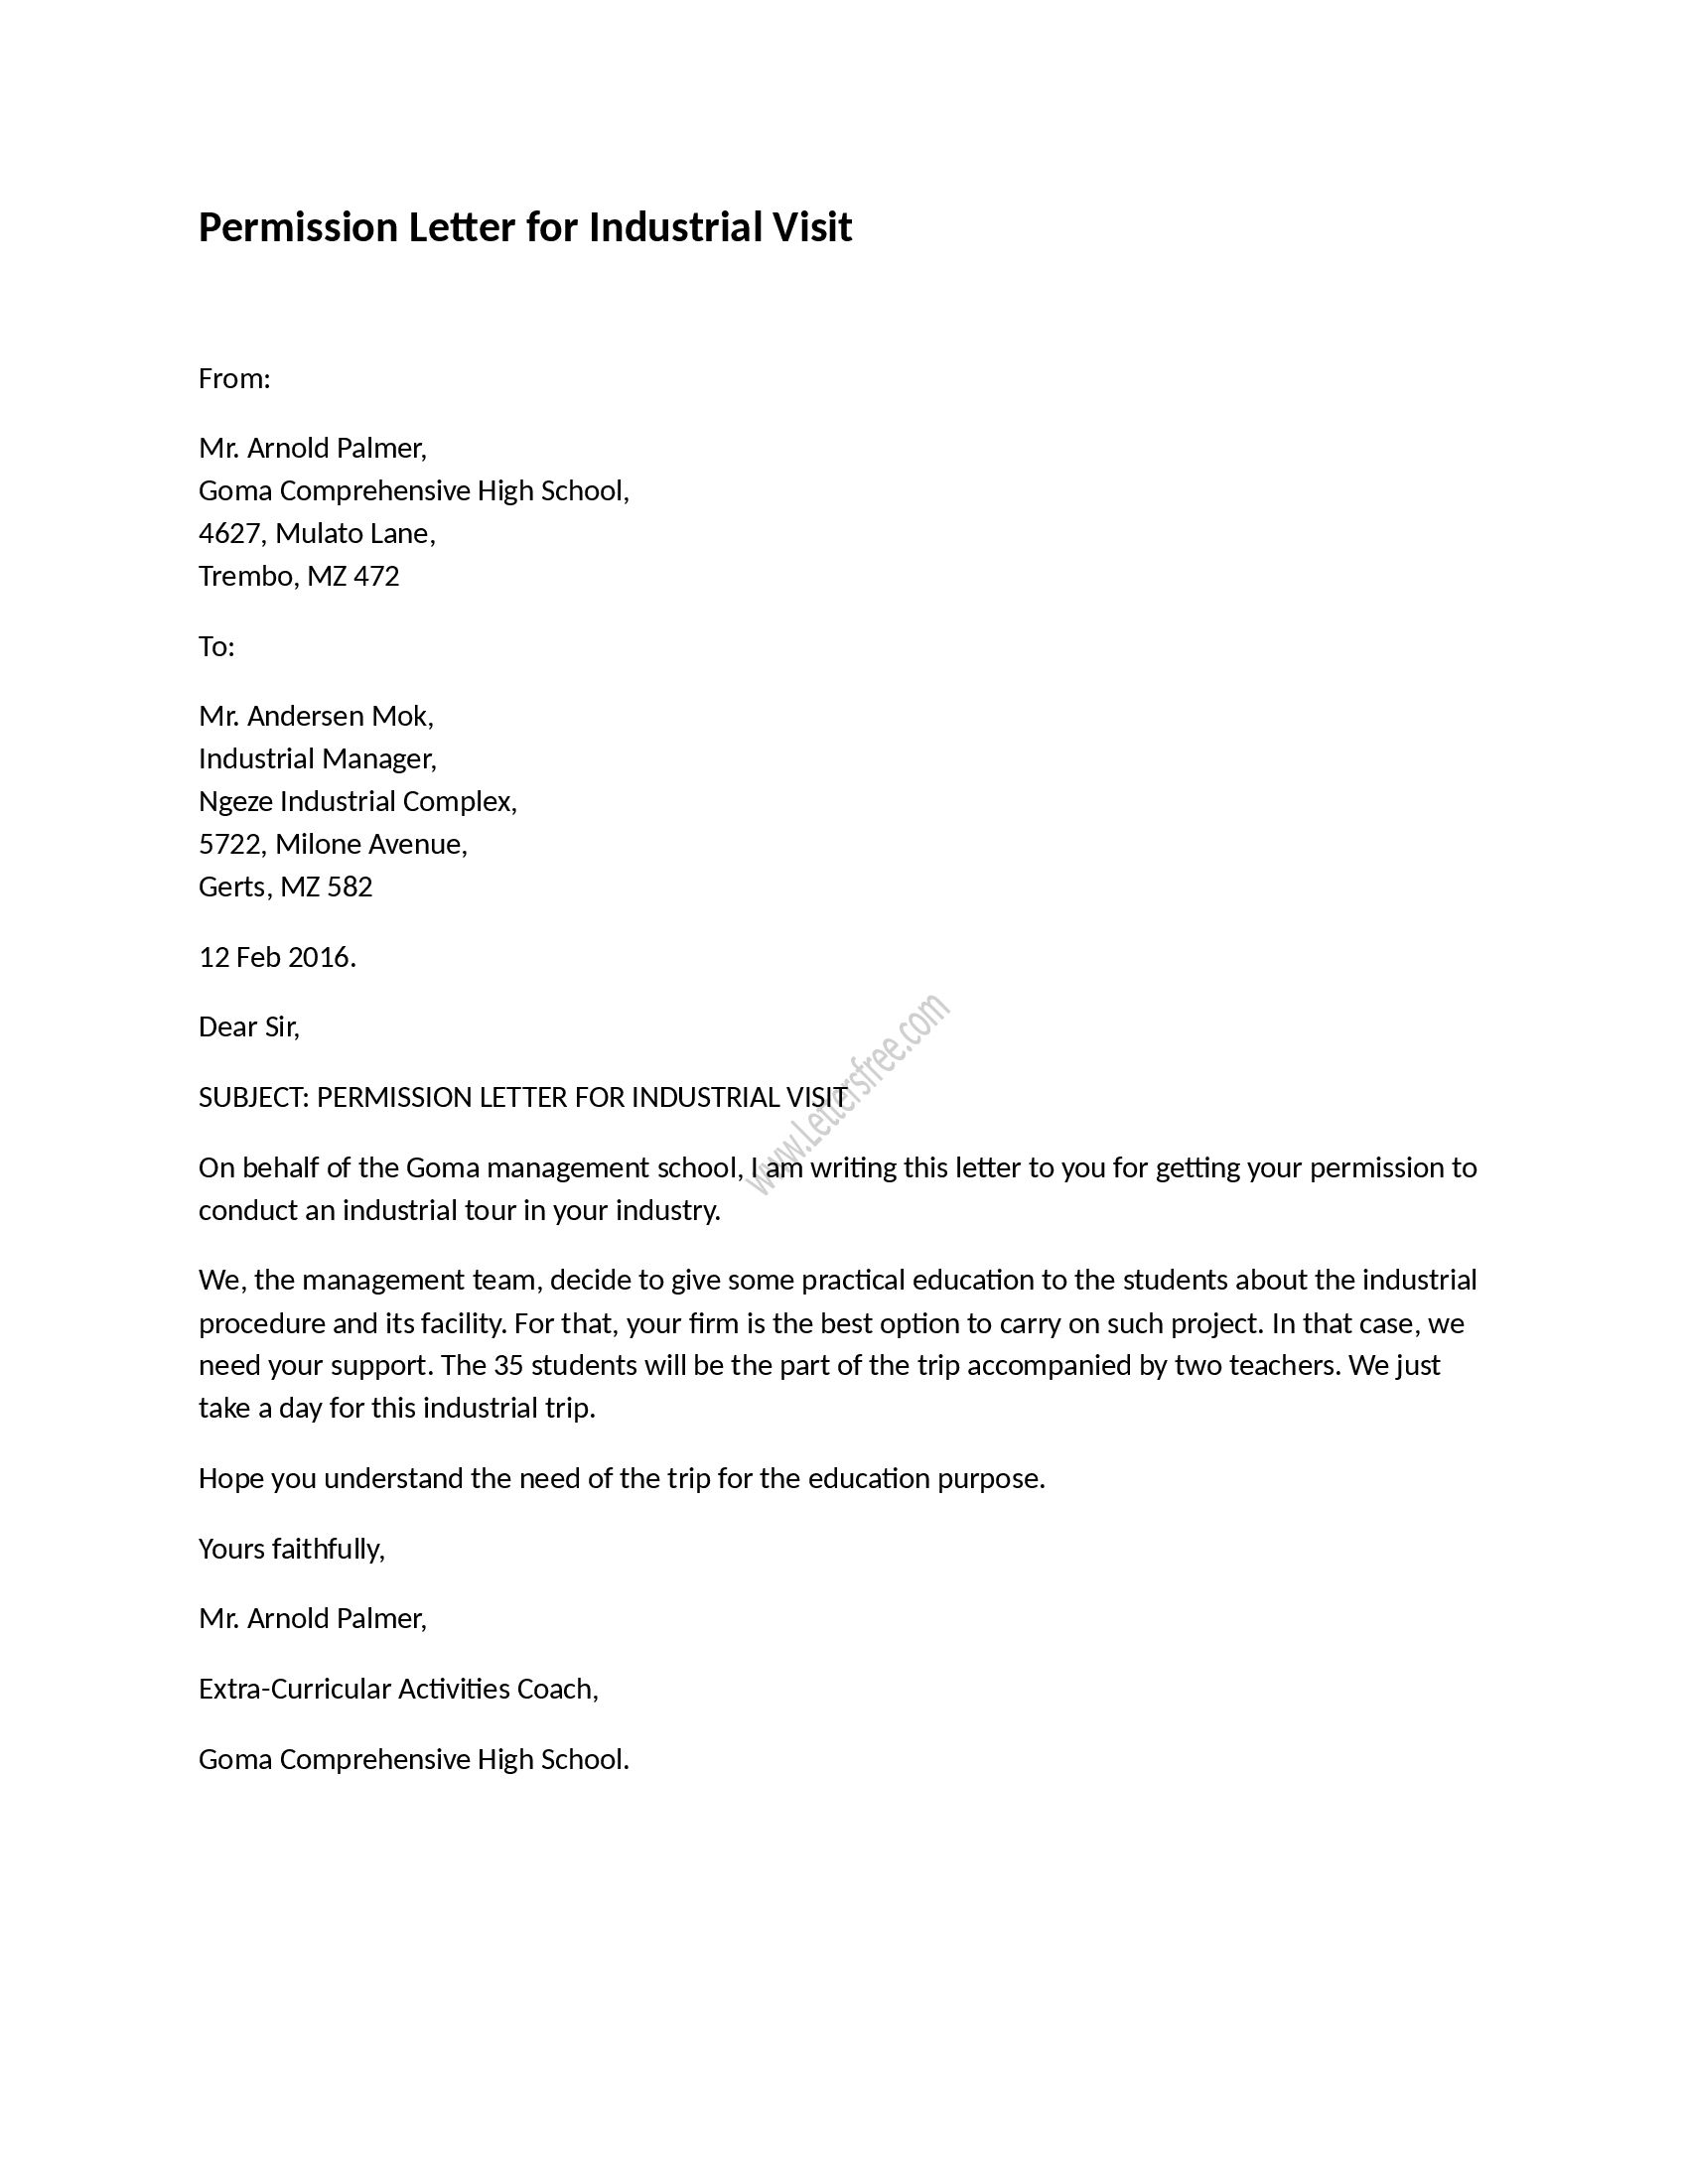 letter of permission to travel with grandchildren template Collection-Example of permission letter for industrial visit as its name says is written for seeking the permission of an industrial visit as a part of the 5-h